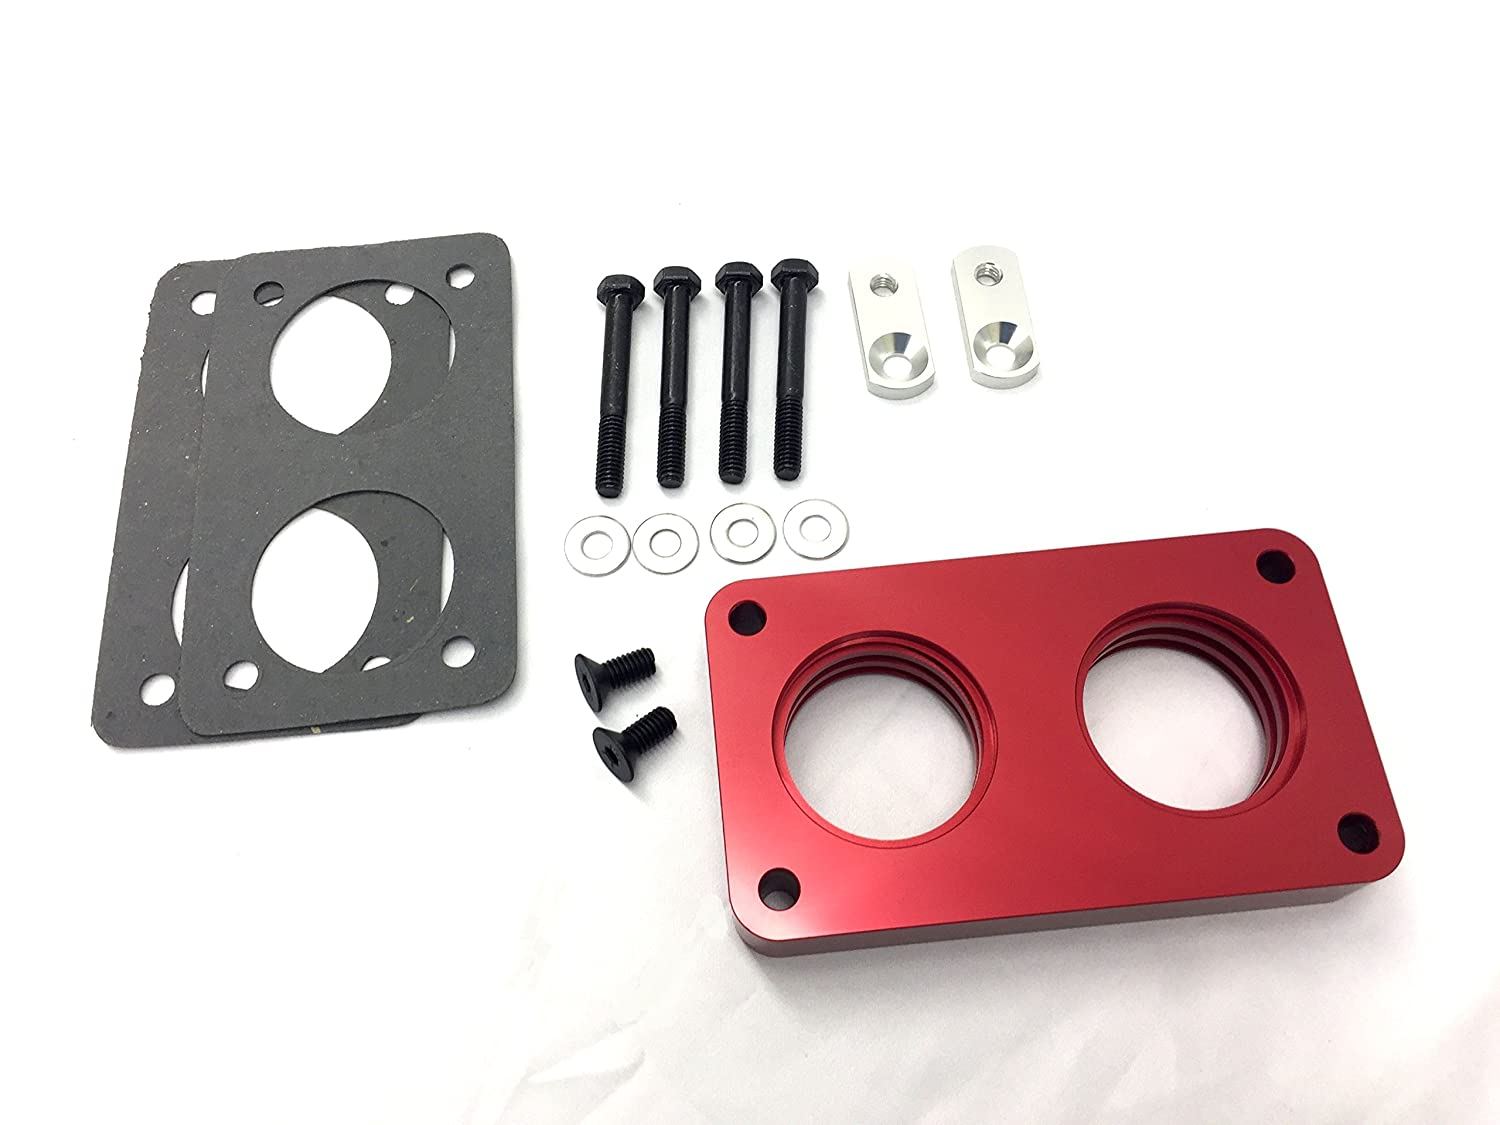 NEW Red Aluminum Throttle Body Spacer Fits 87-95 Ford Bronco F-150 5.0L 5.8L